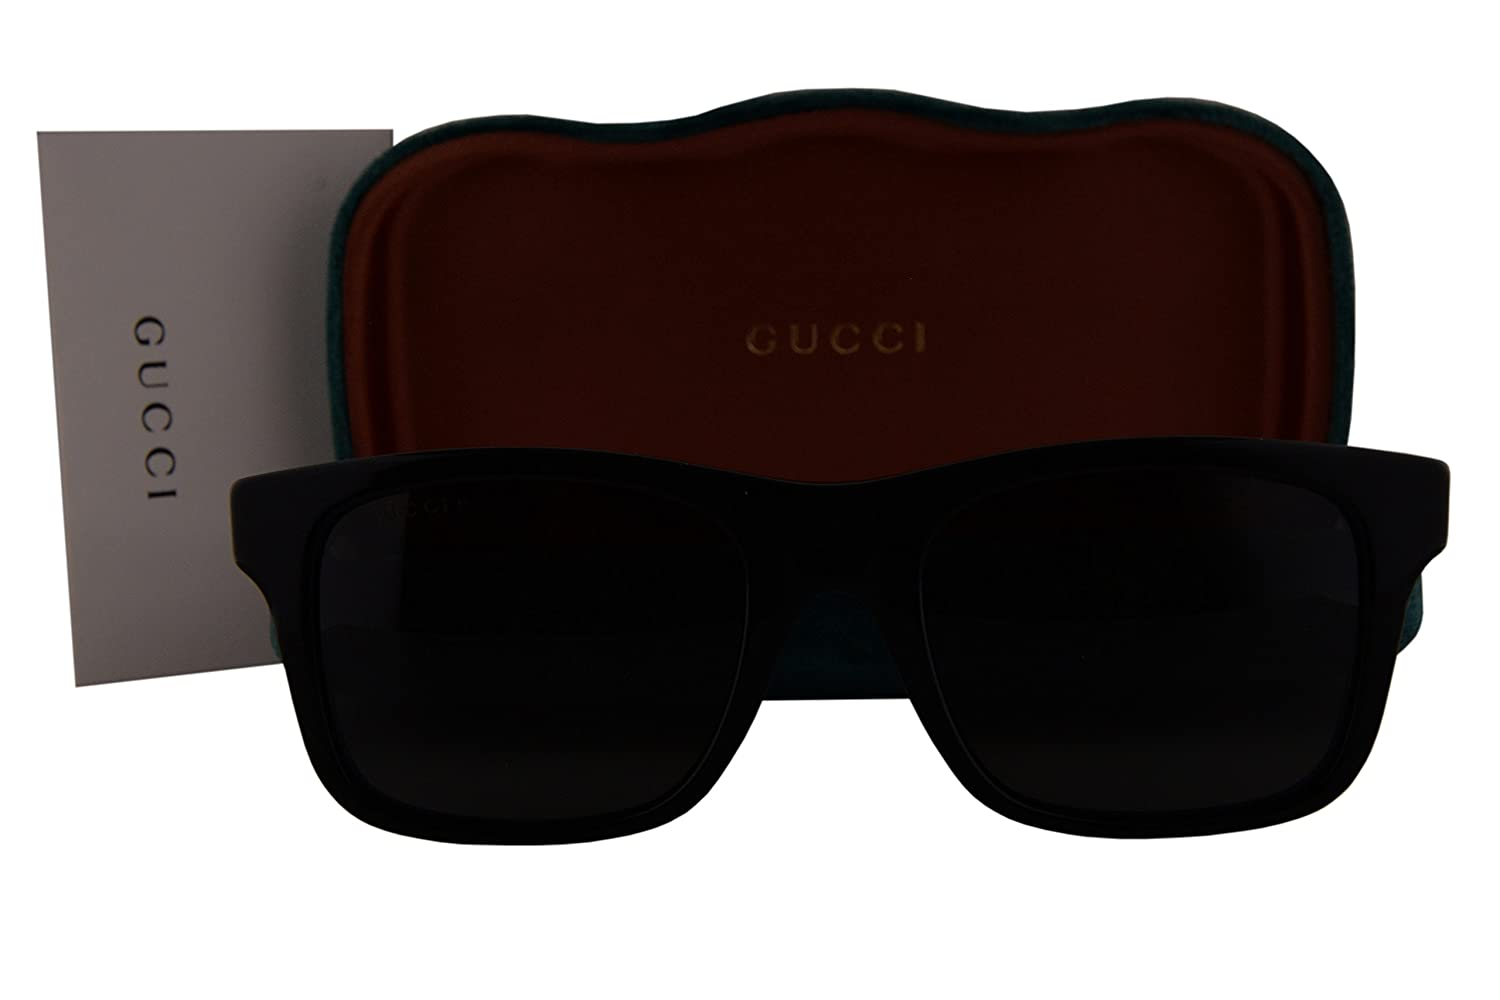 b1469e2442 Gucci GG0008S Sunglasses Shiny Black w/Polarized Gray Lens 002 GG 0008S:  Amazon.co.uk: Clothing